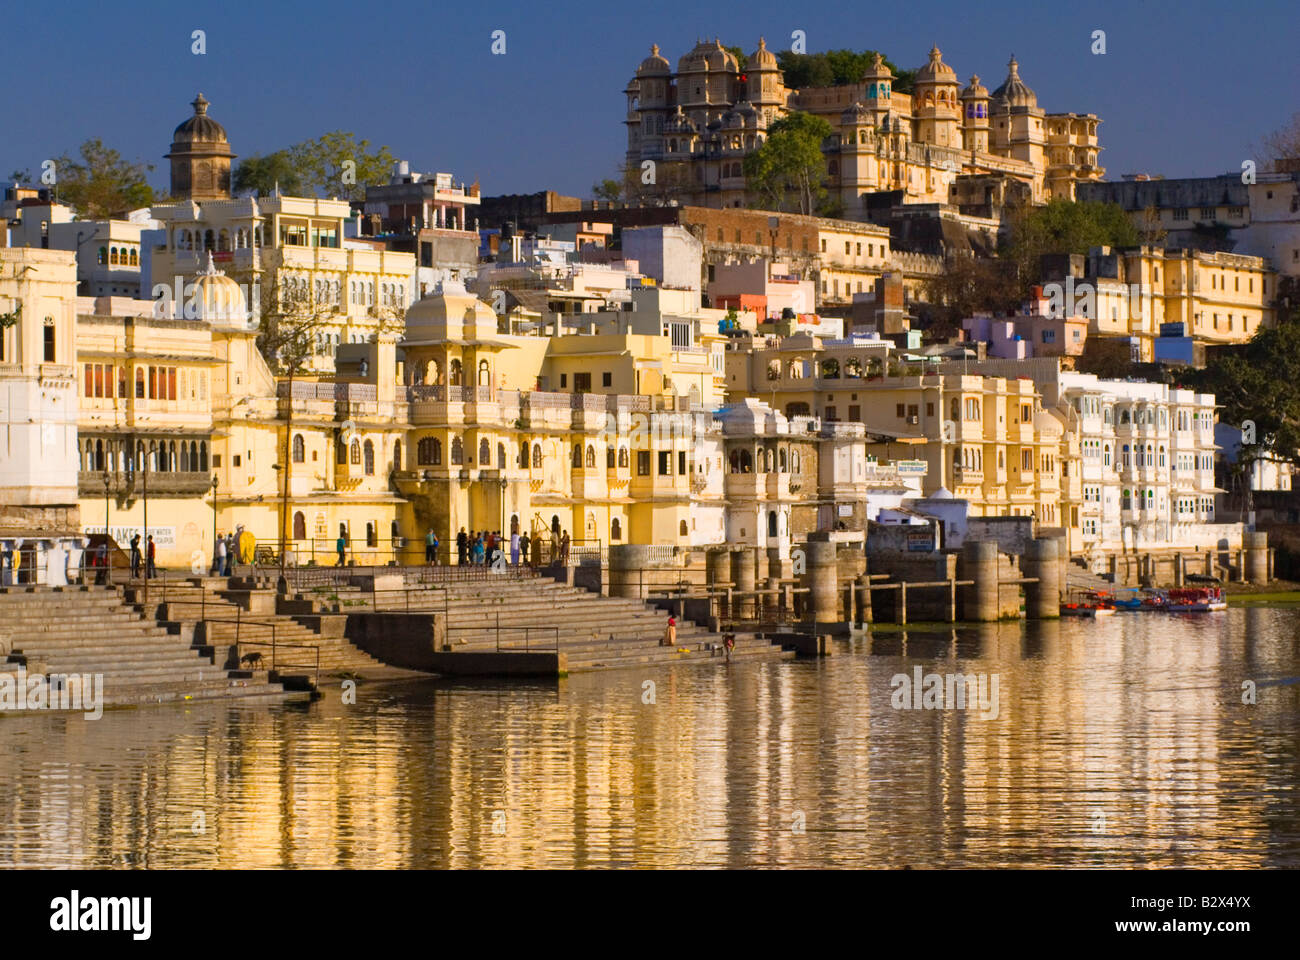 Udaipur, Rajasthan, India, Subcontinent, Asia - Stock Image